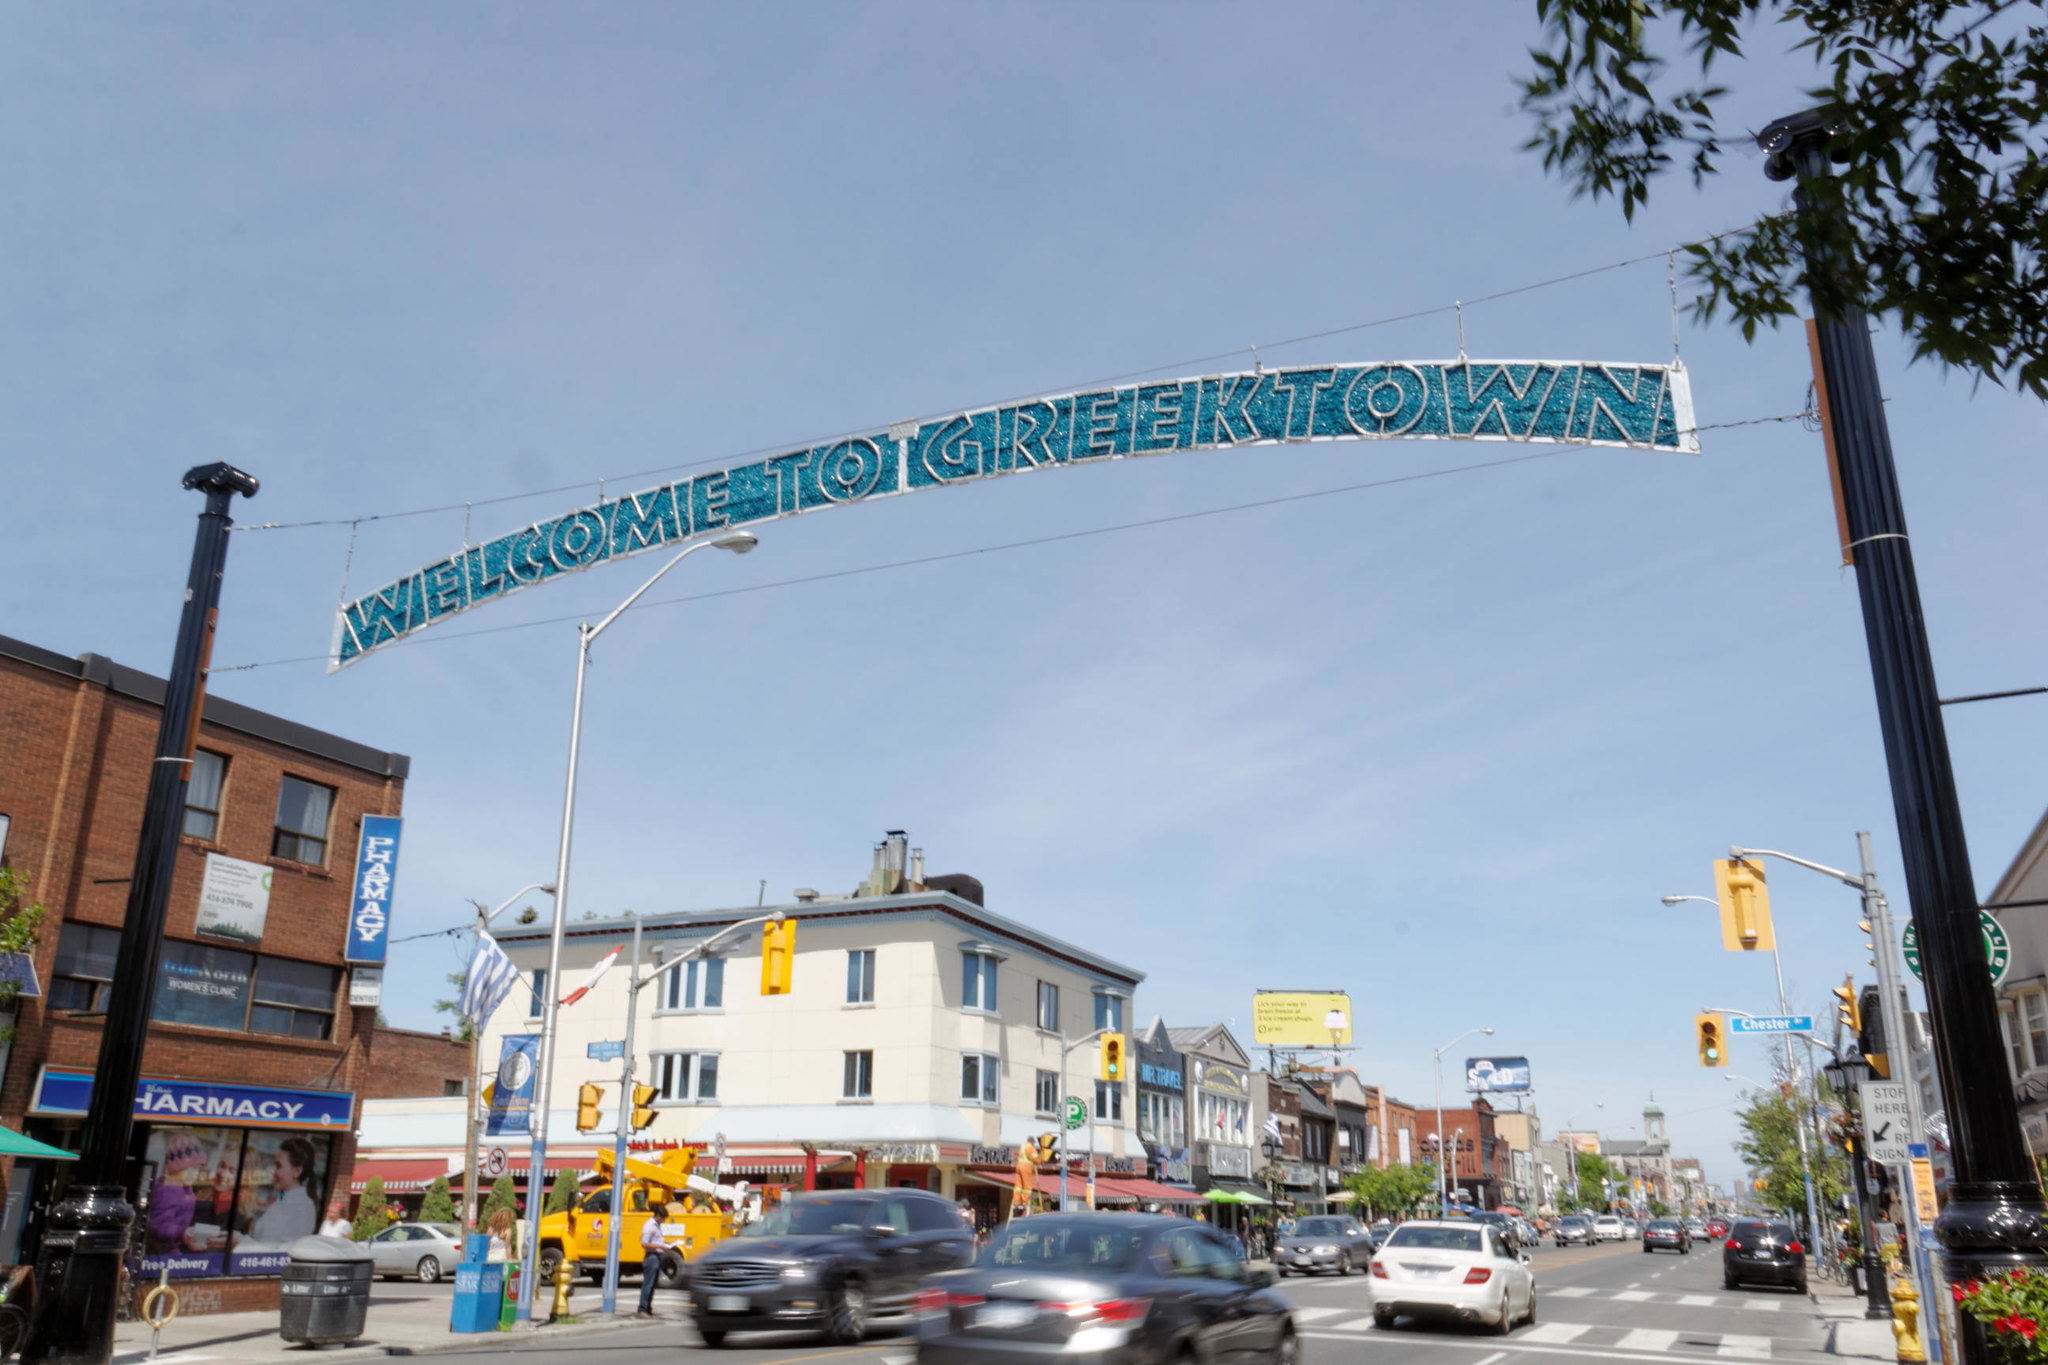 Welcome banner in Greektown Toronto, also called The Danforth.